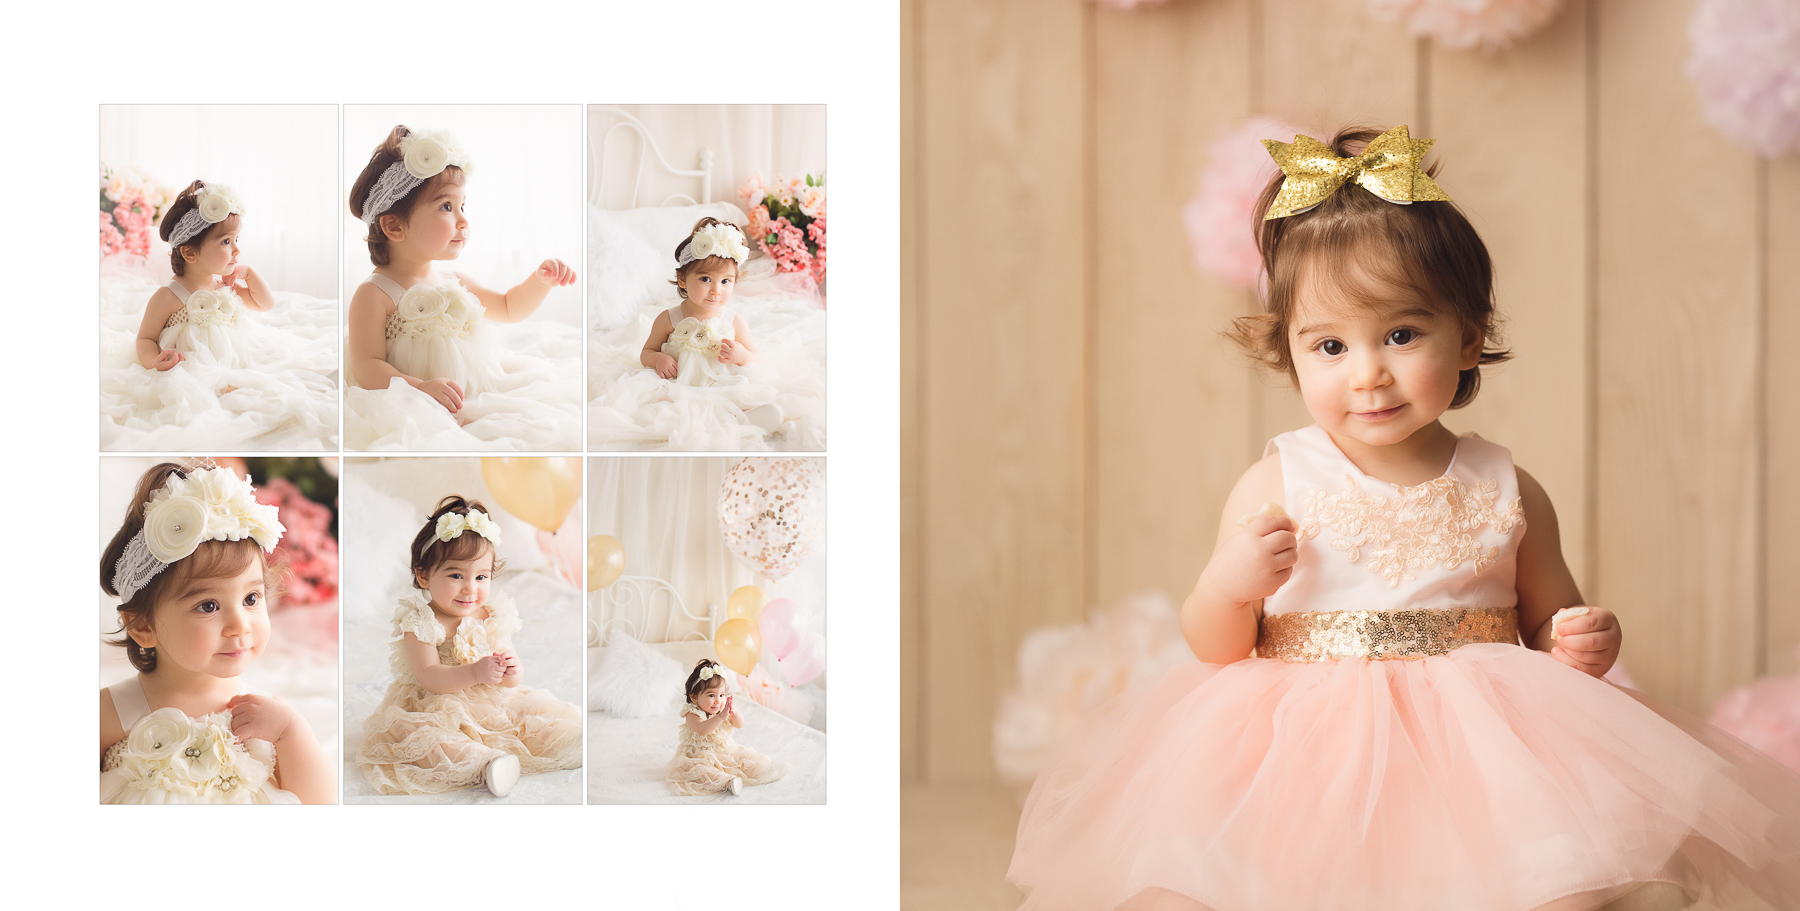 Vancouver & Burnaby baby photography - cake smash - classic portraite